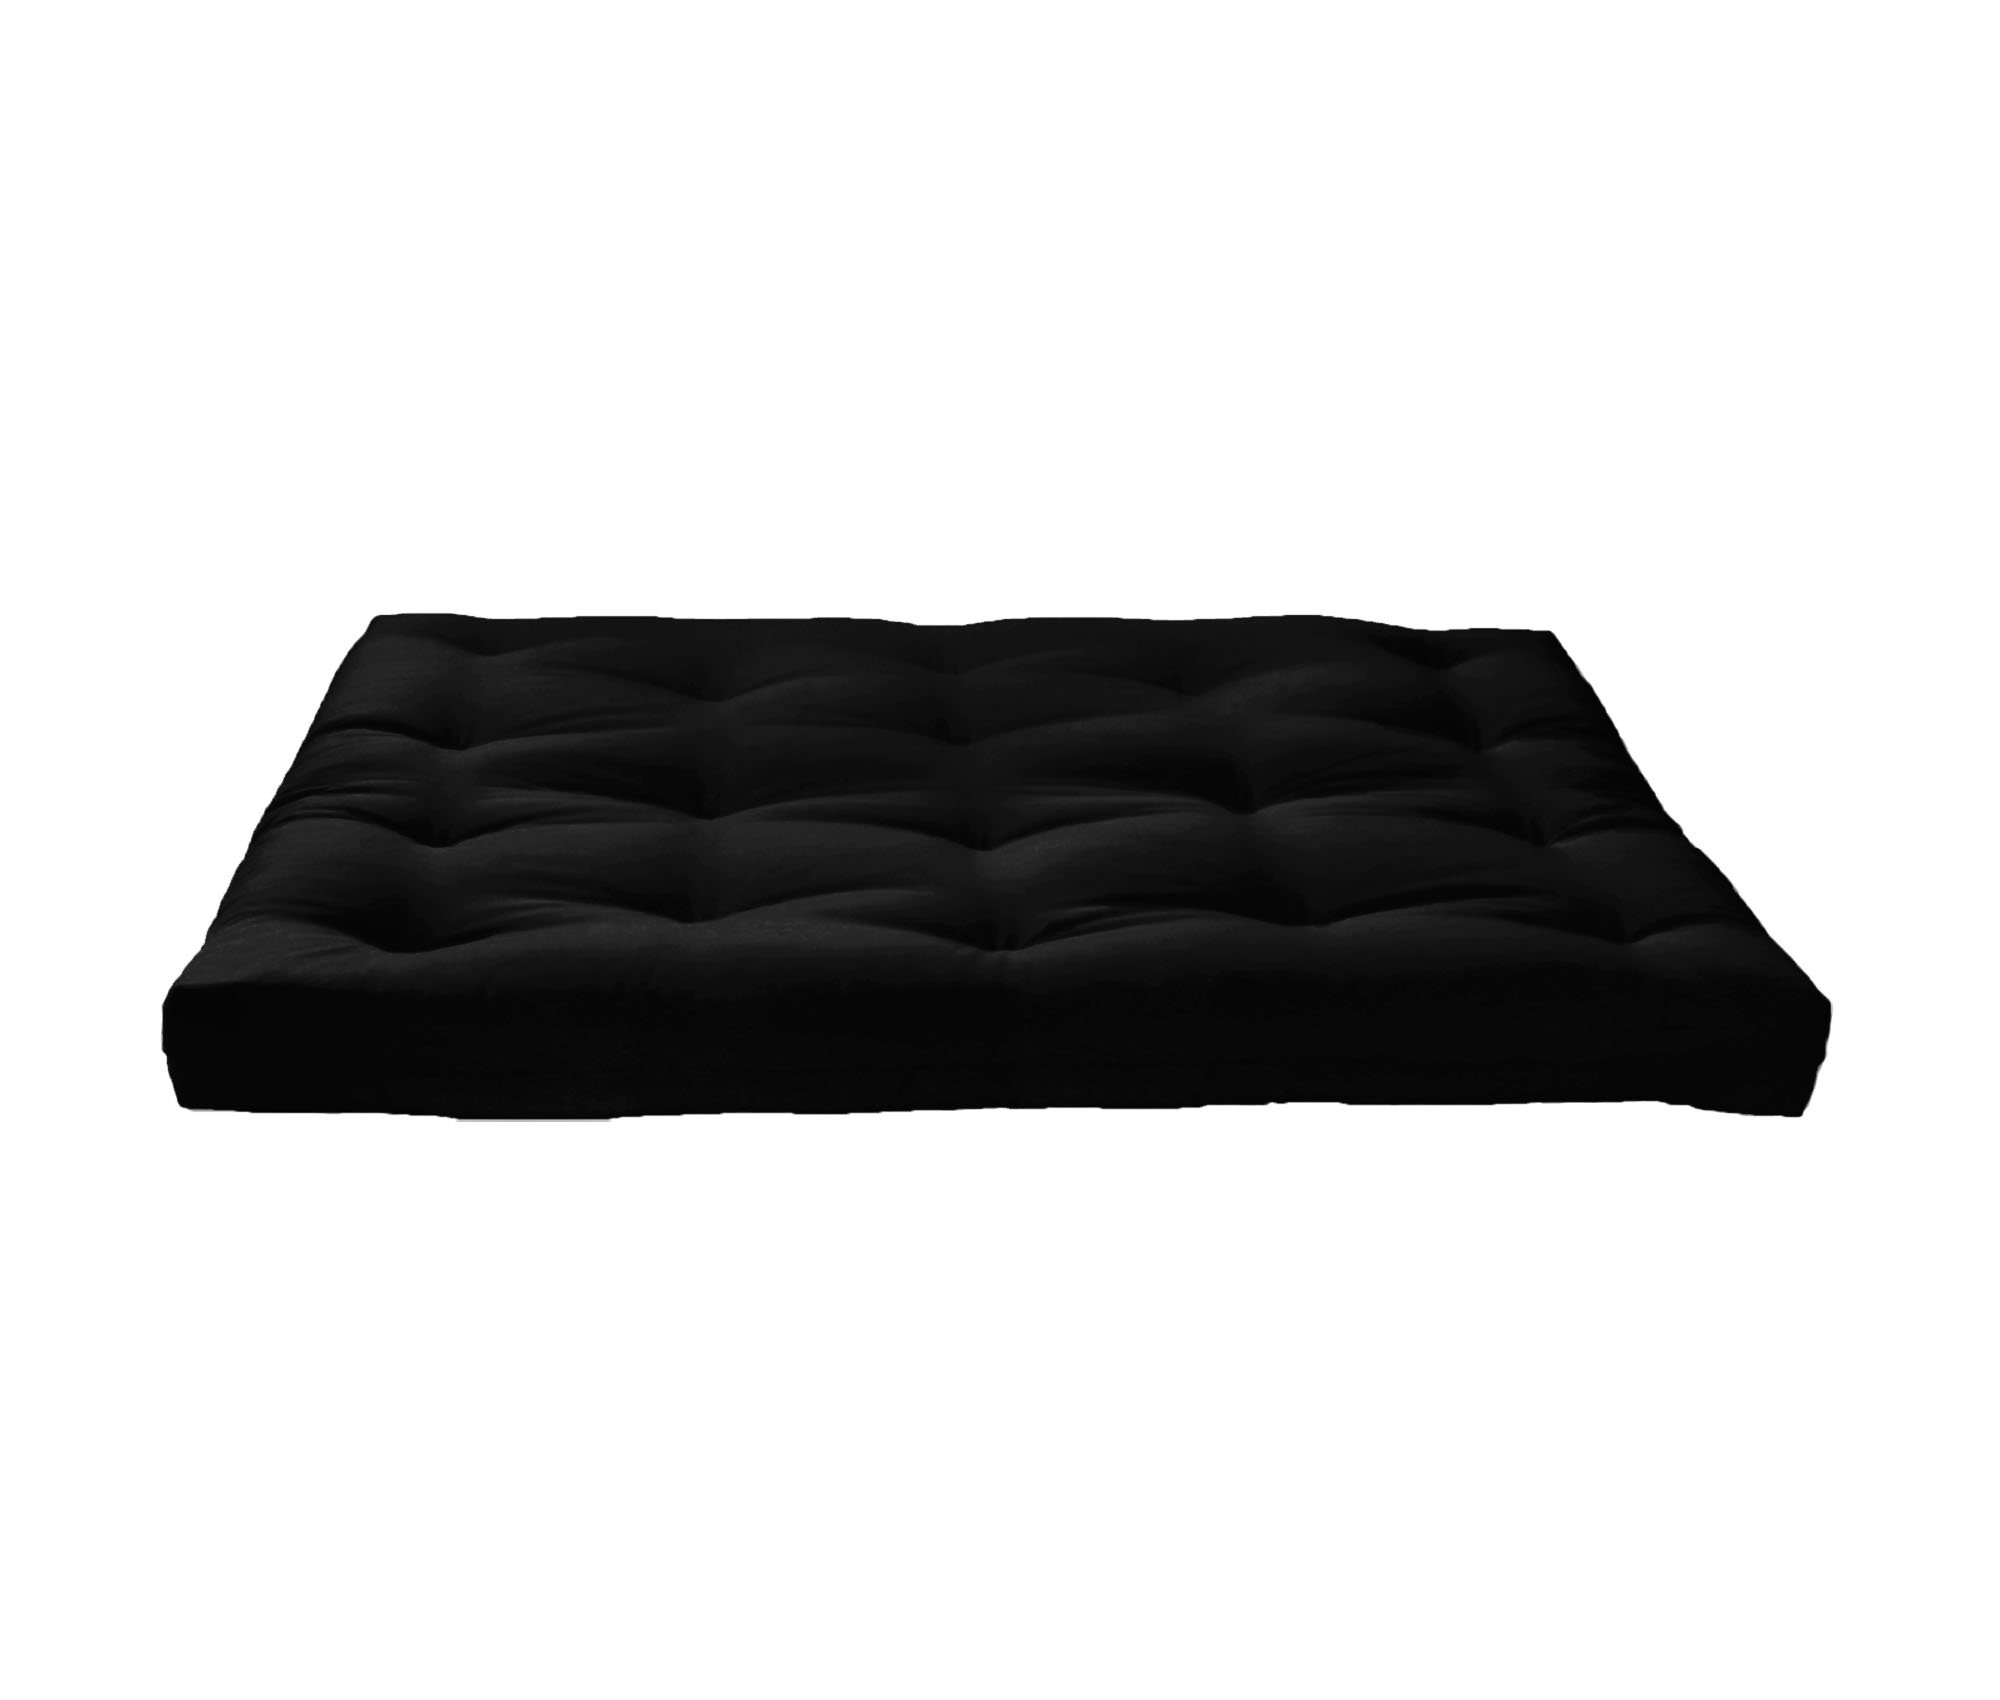 Artiva USA Home Deluxe 8'' Futon Mattress with Inner Spring Sofa bed, Full, Black by Artiva USA